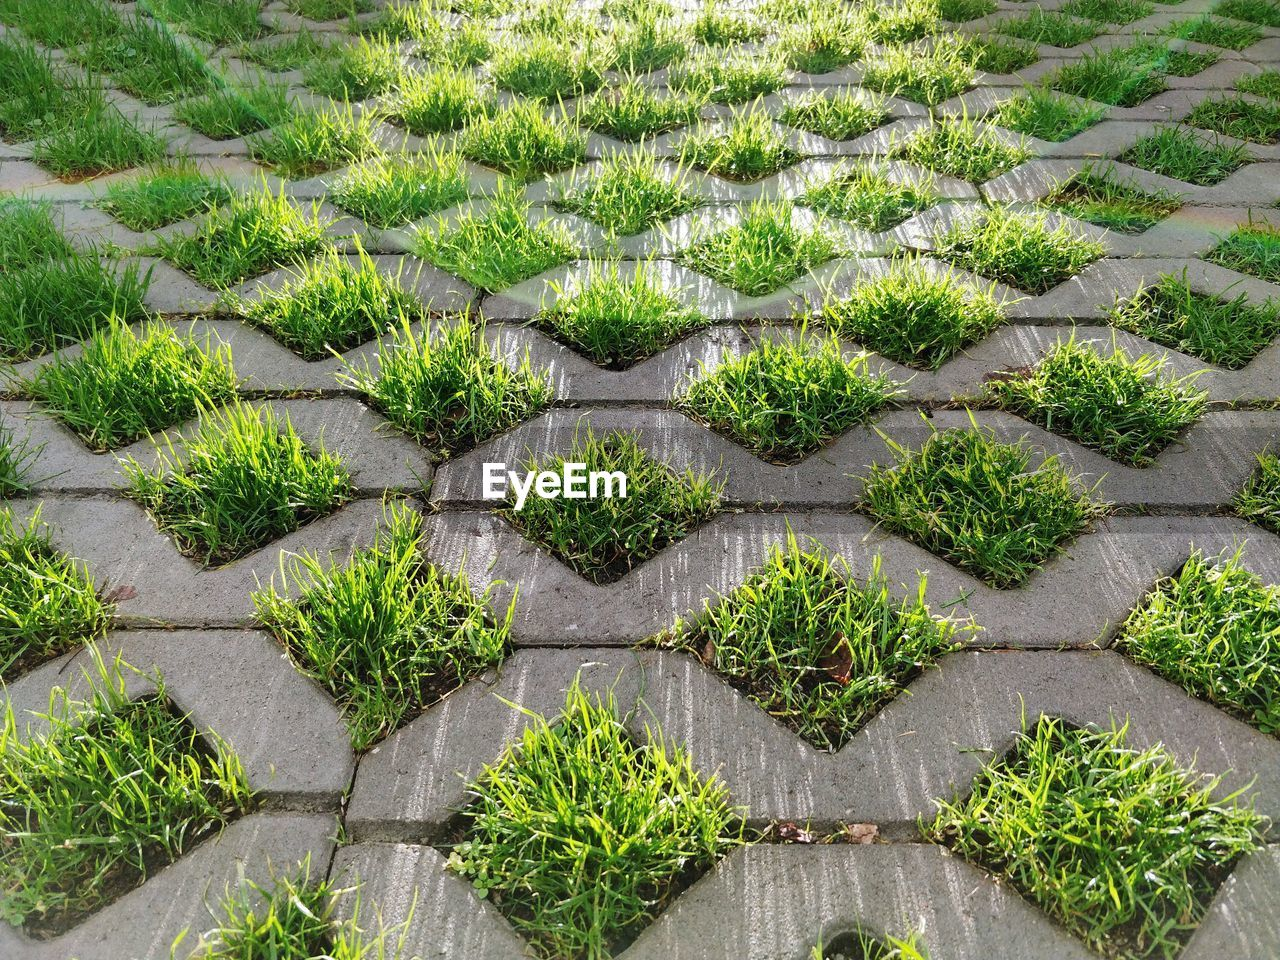 High Angle View Of Grass Growing On Concrete